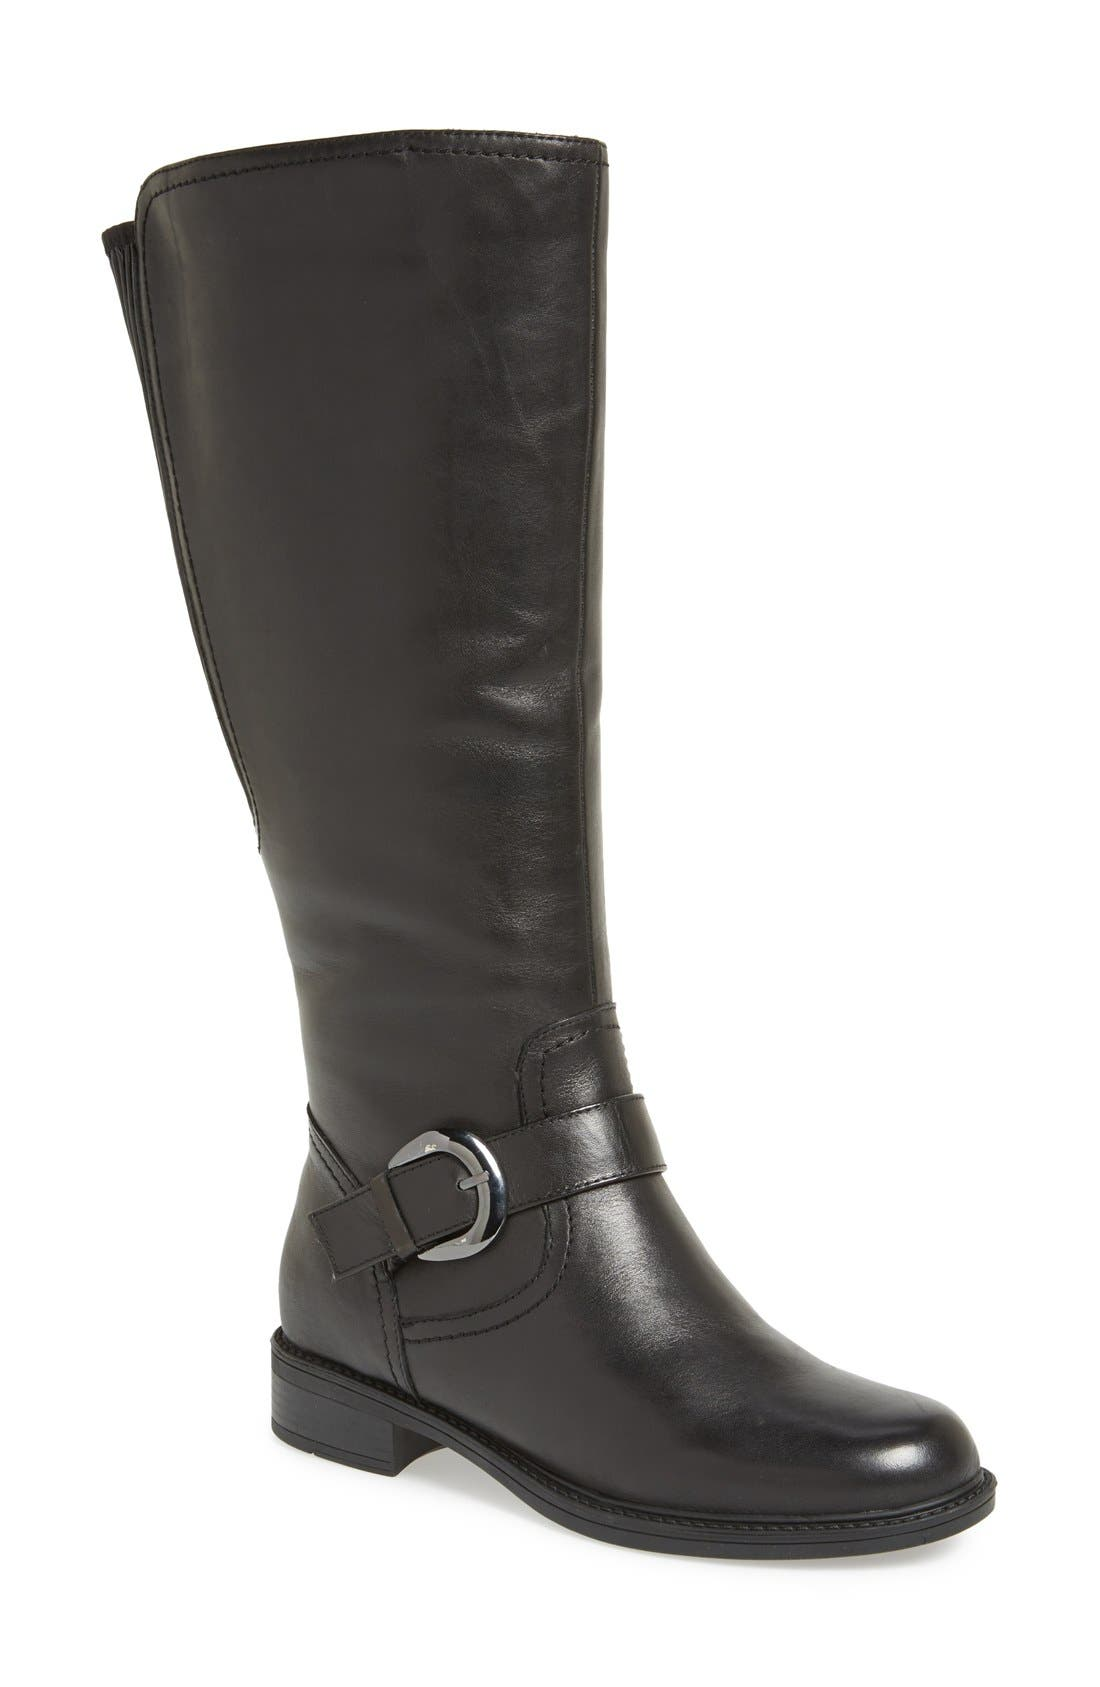 'Branson' Tall Riding Boot,                         Main,                         color, Black